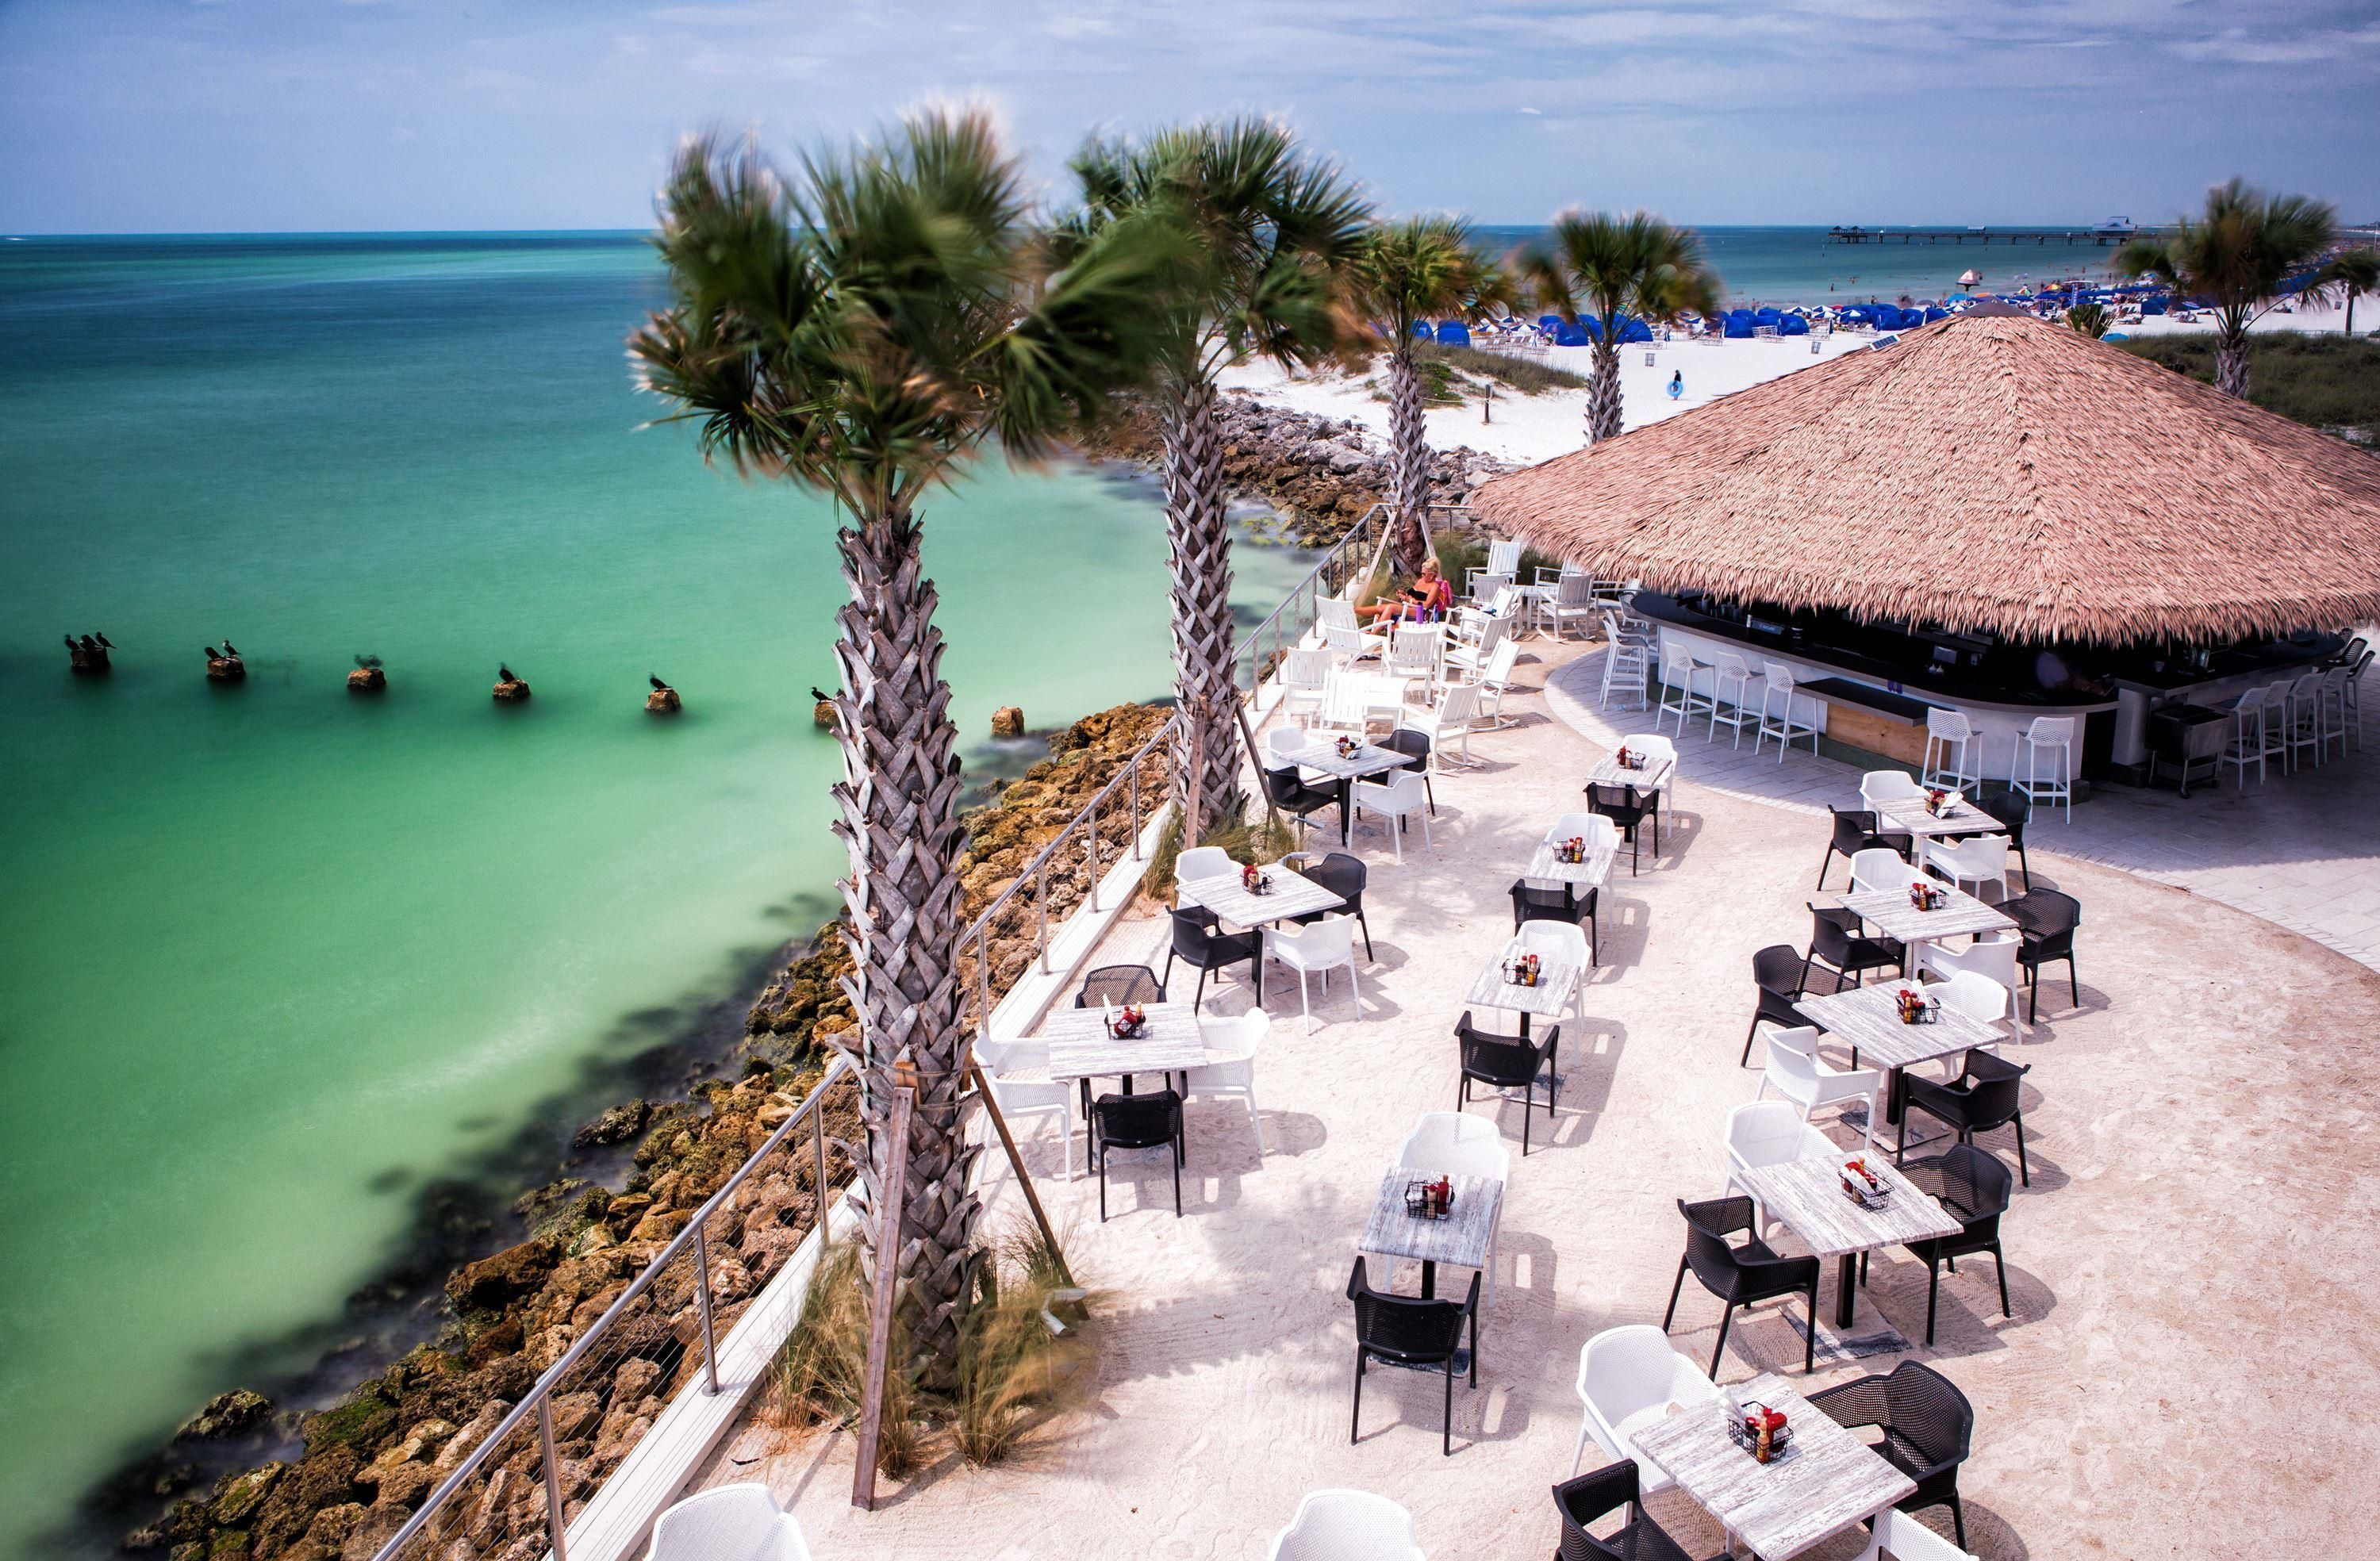 Find Restaurants Near The Beach And Water In St Pete Clearwater Great Waterfront Dining Destinations That Provide Delicious Menus Views